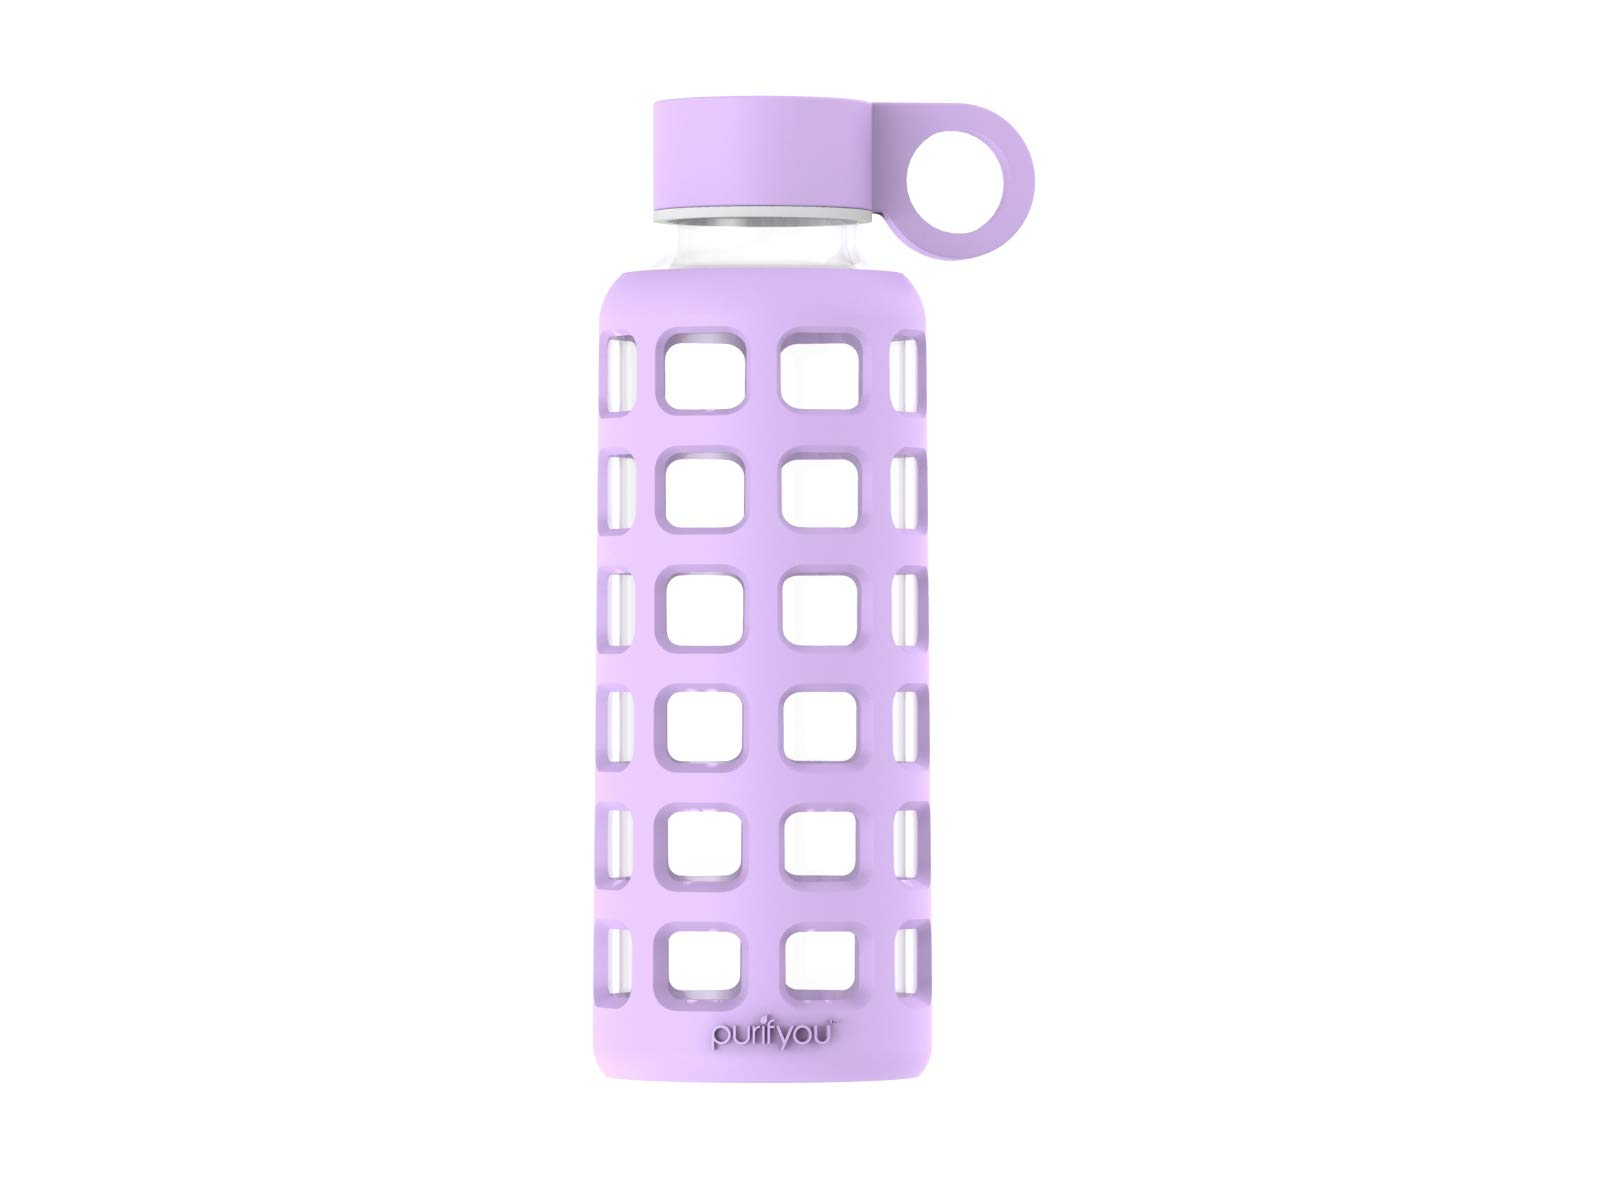 purifyou Premium Glass Water Bottle with Silicone Sleeve & Stainless Steel Lid Insert, 12/22/32 oz (Lavender, 12 oz)